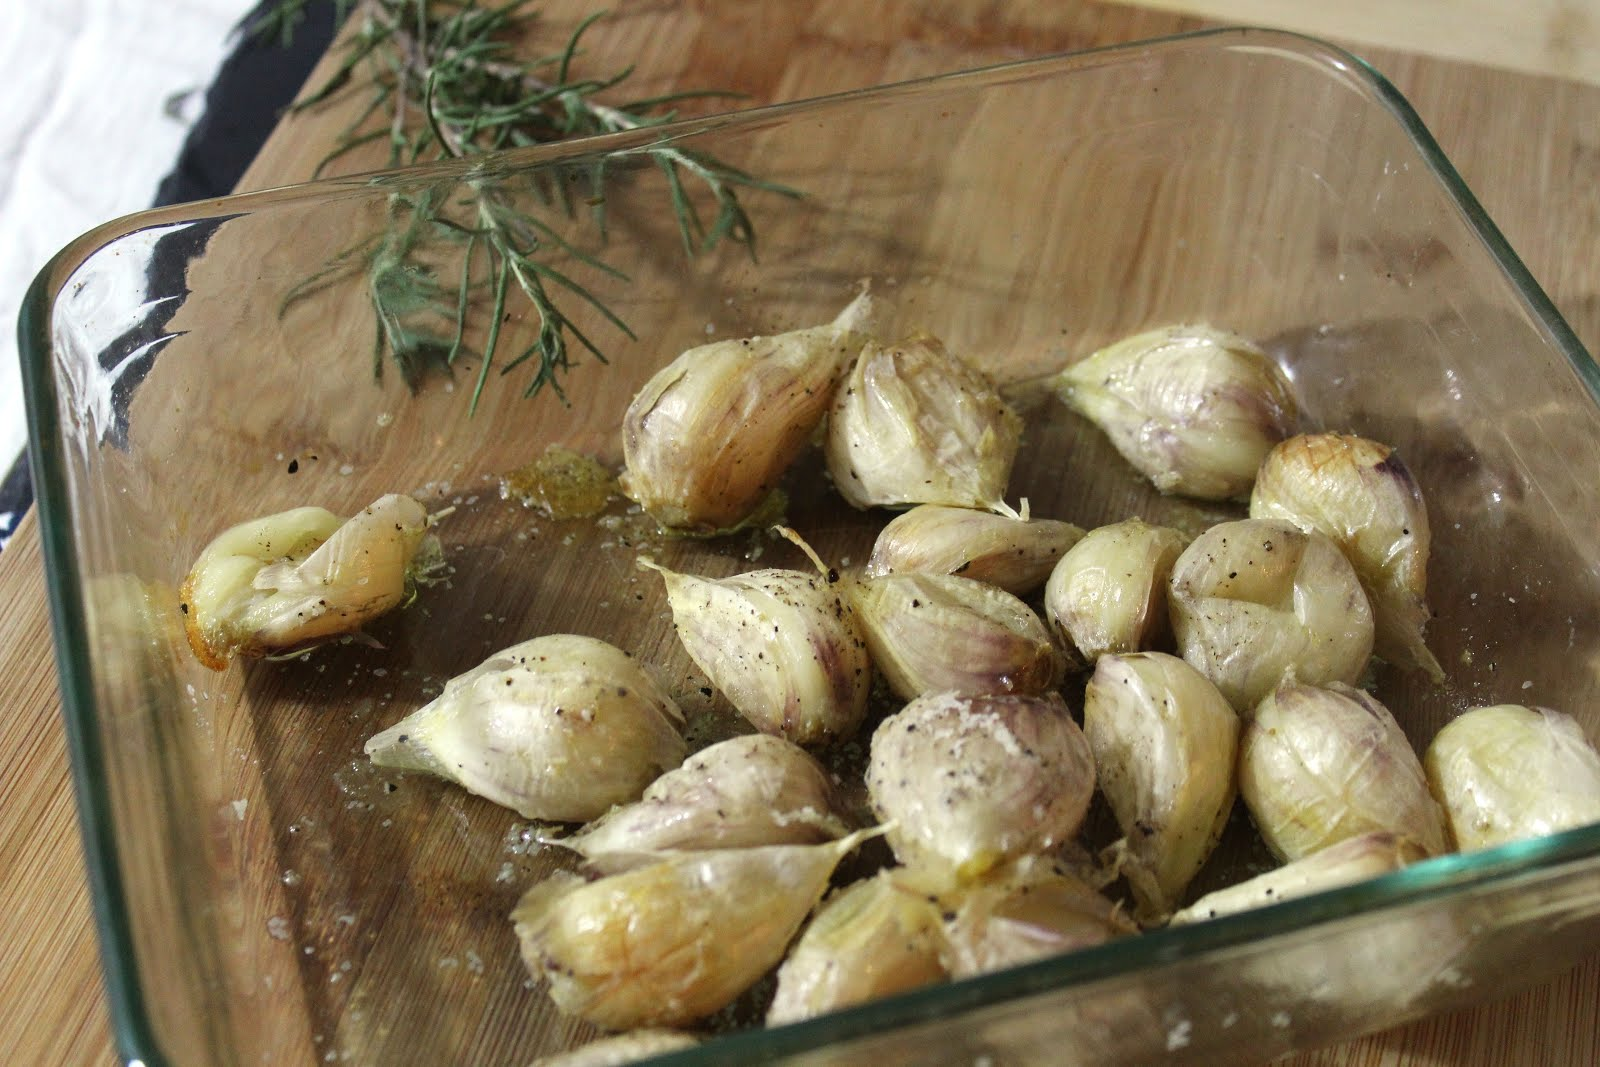 44-clove garlic soup - Saltwater - eating and cooking ...